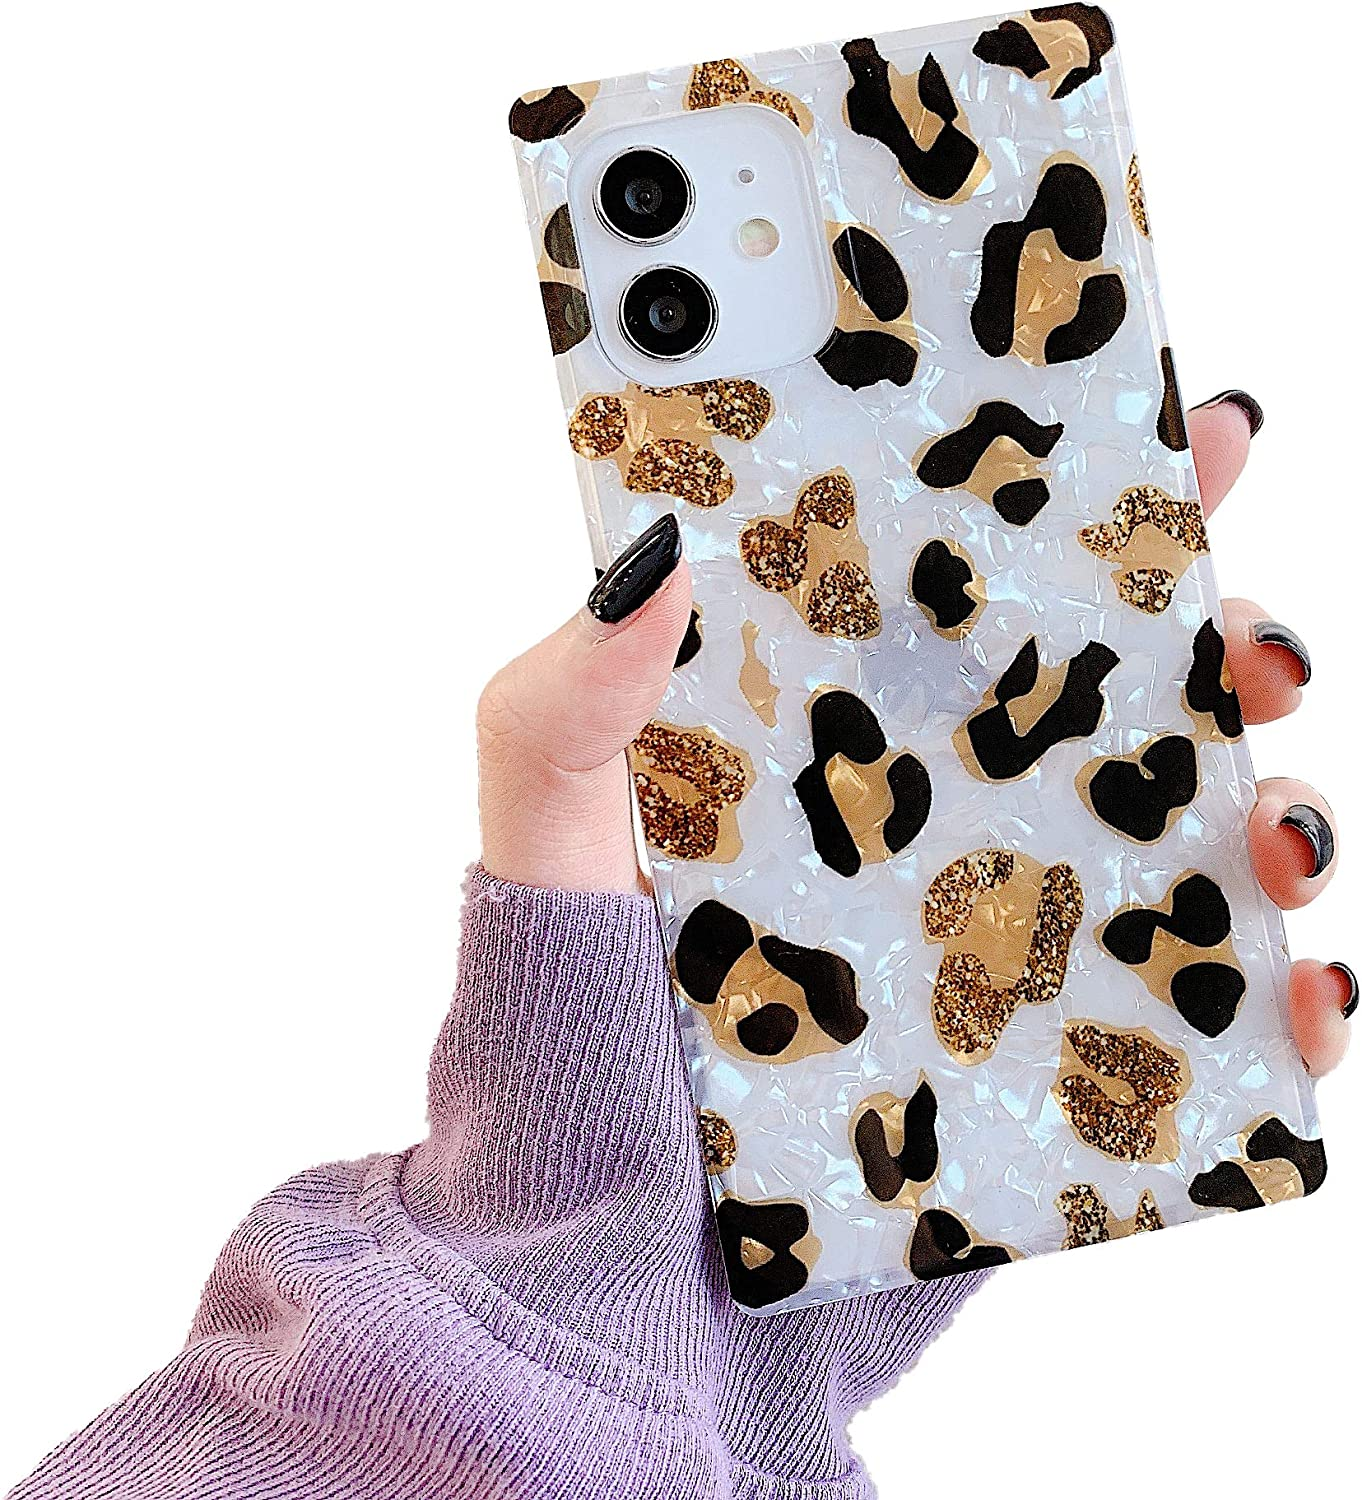 Compatible with iPhone 12/12 Pro Square Case Luxury Sparkle Leopard Pattern Chic Slim Glitter Translucent Soft TPU Silicone Gel Protective Cases Cover for iPhone 12 Pro 6.1-inch